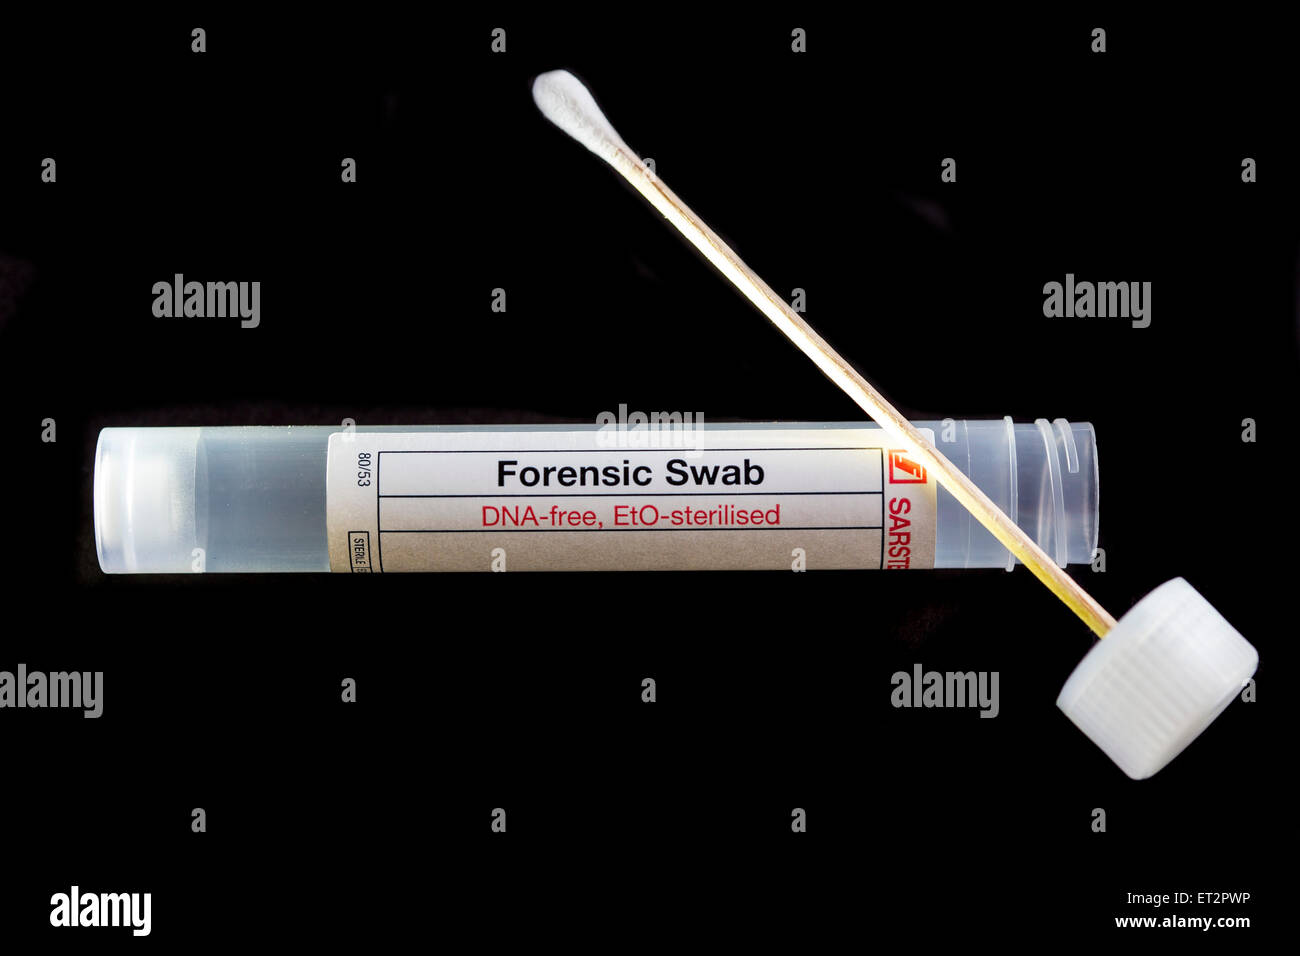 investigation and comparison of international dna databases Is it ethical to have a national dna database  to set international standards for dna databases that  criminal investigations but to.